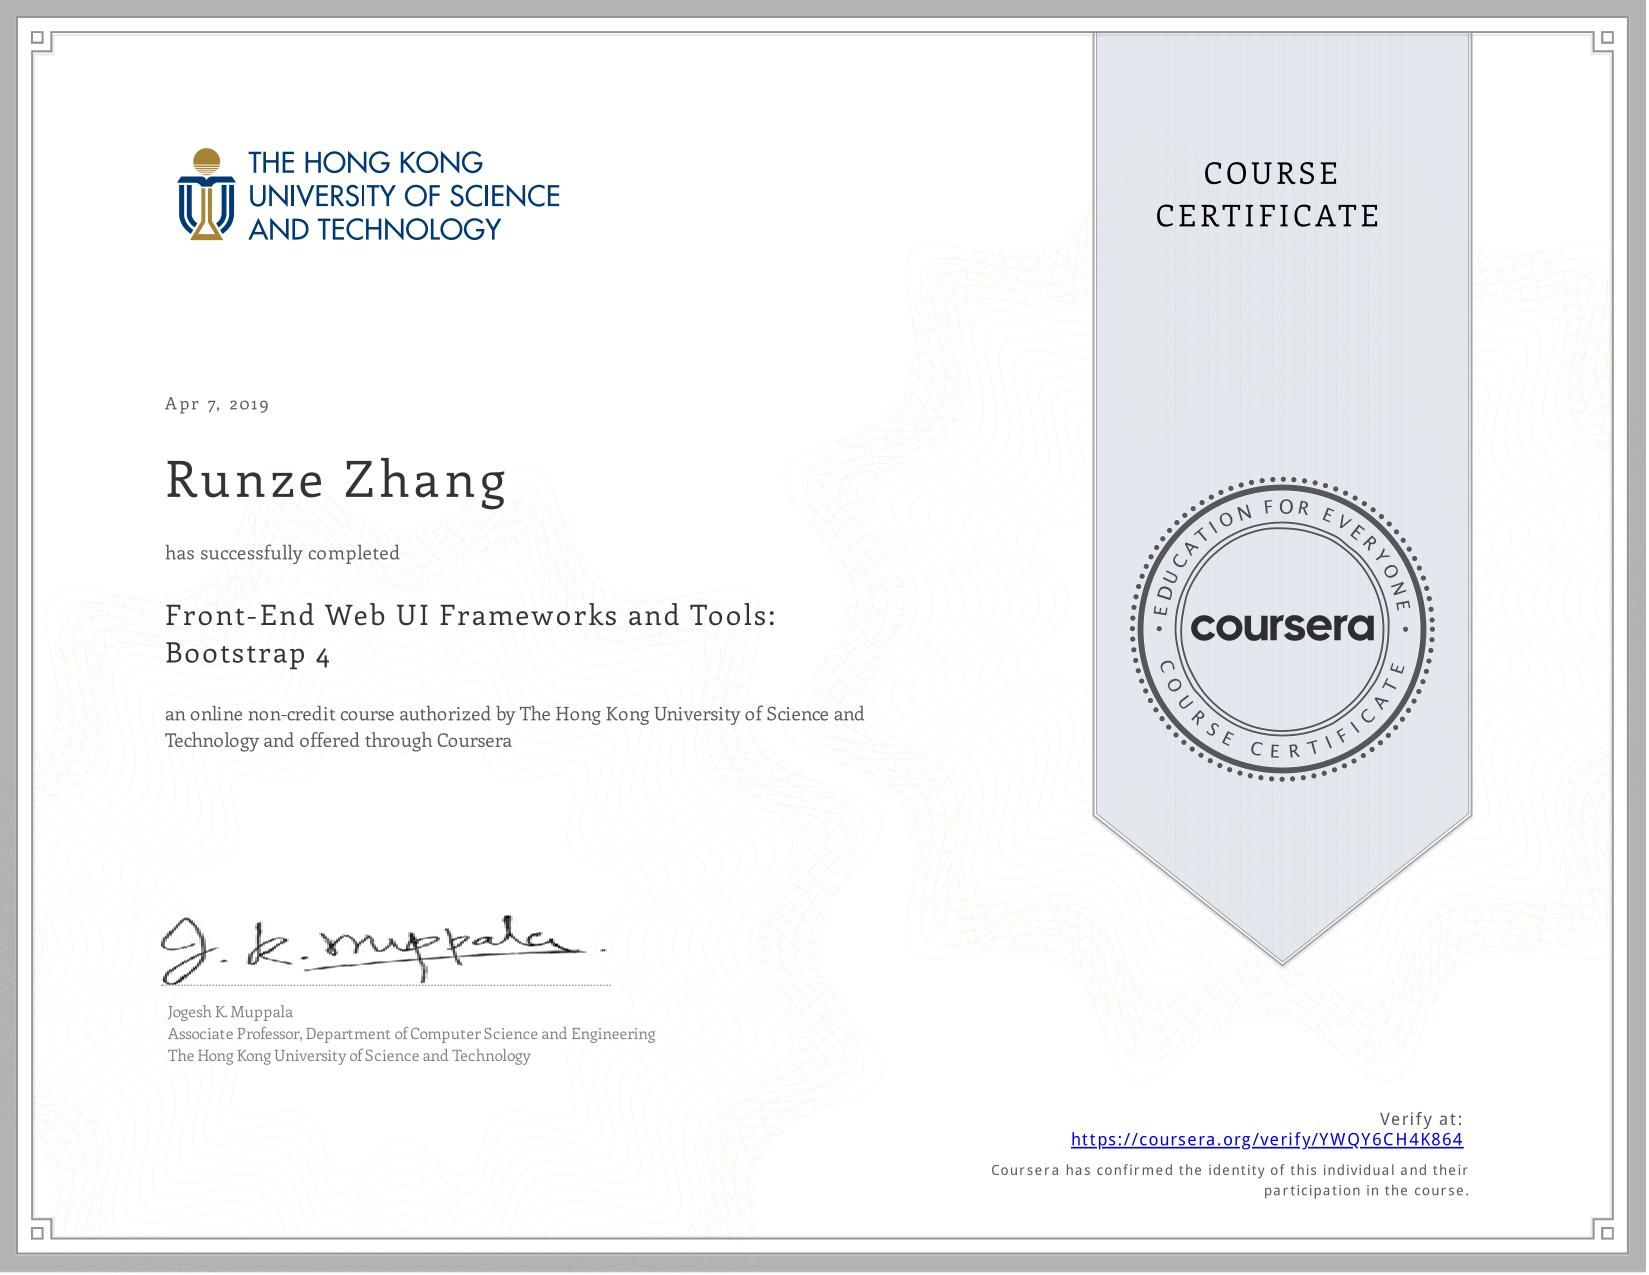 View certificate for Runze Zhang, Front-End Web UI Frameworks and Tools: Bootstrap 4, an online non-credit course authorized by  & The Hong Kong University of Science and Technology and offered through Coursera